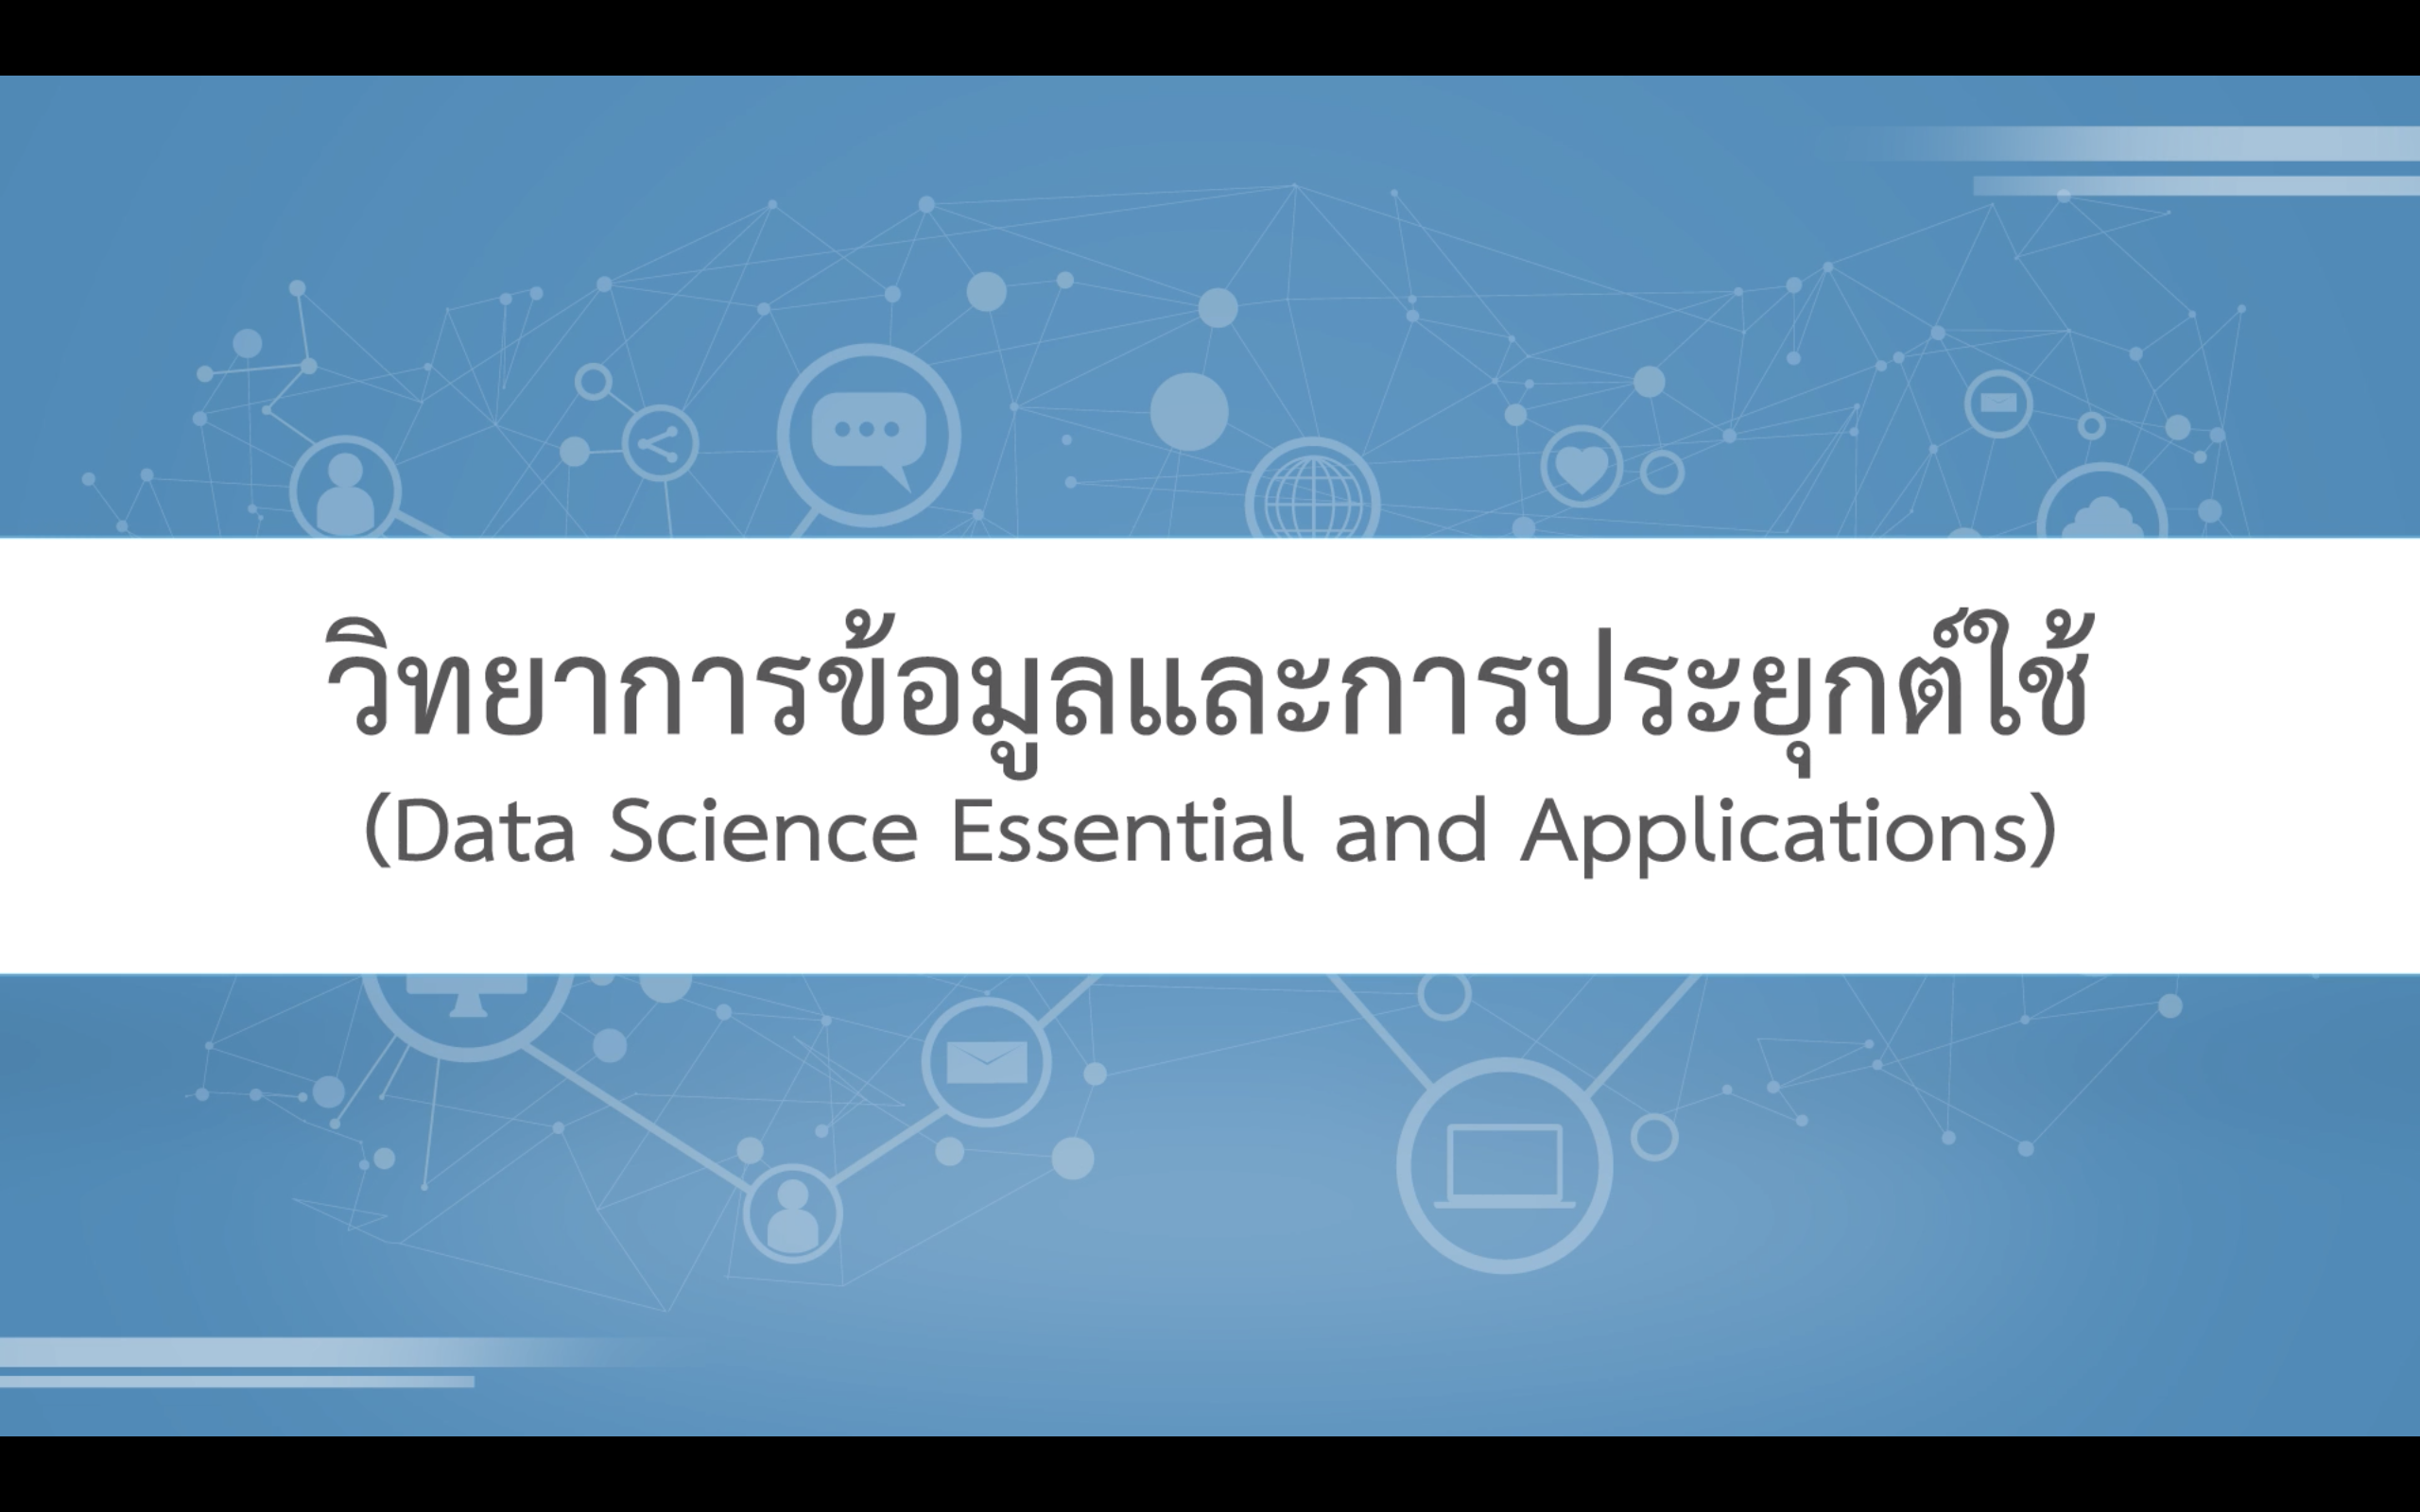 데이터 과학과 그 응용|Data Science Essential and Applications CU023-KR